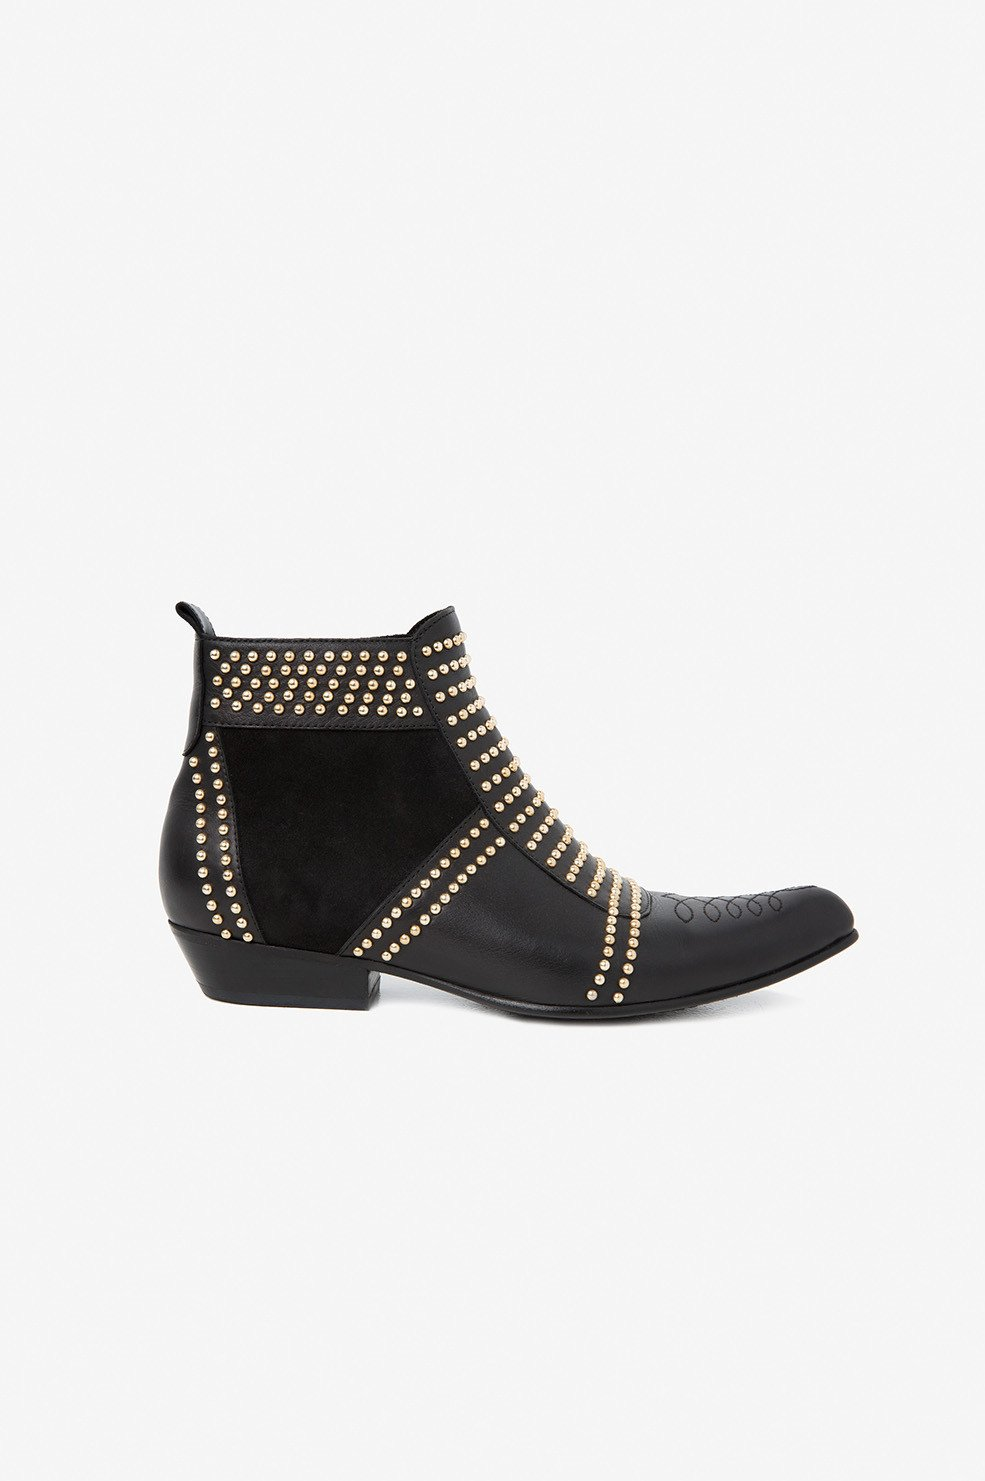 Charlie Boots - Gold Studs